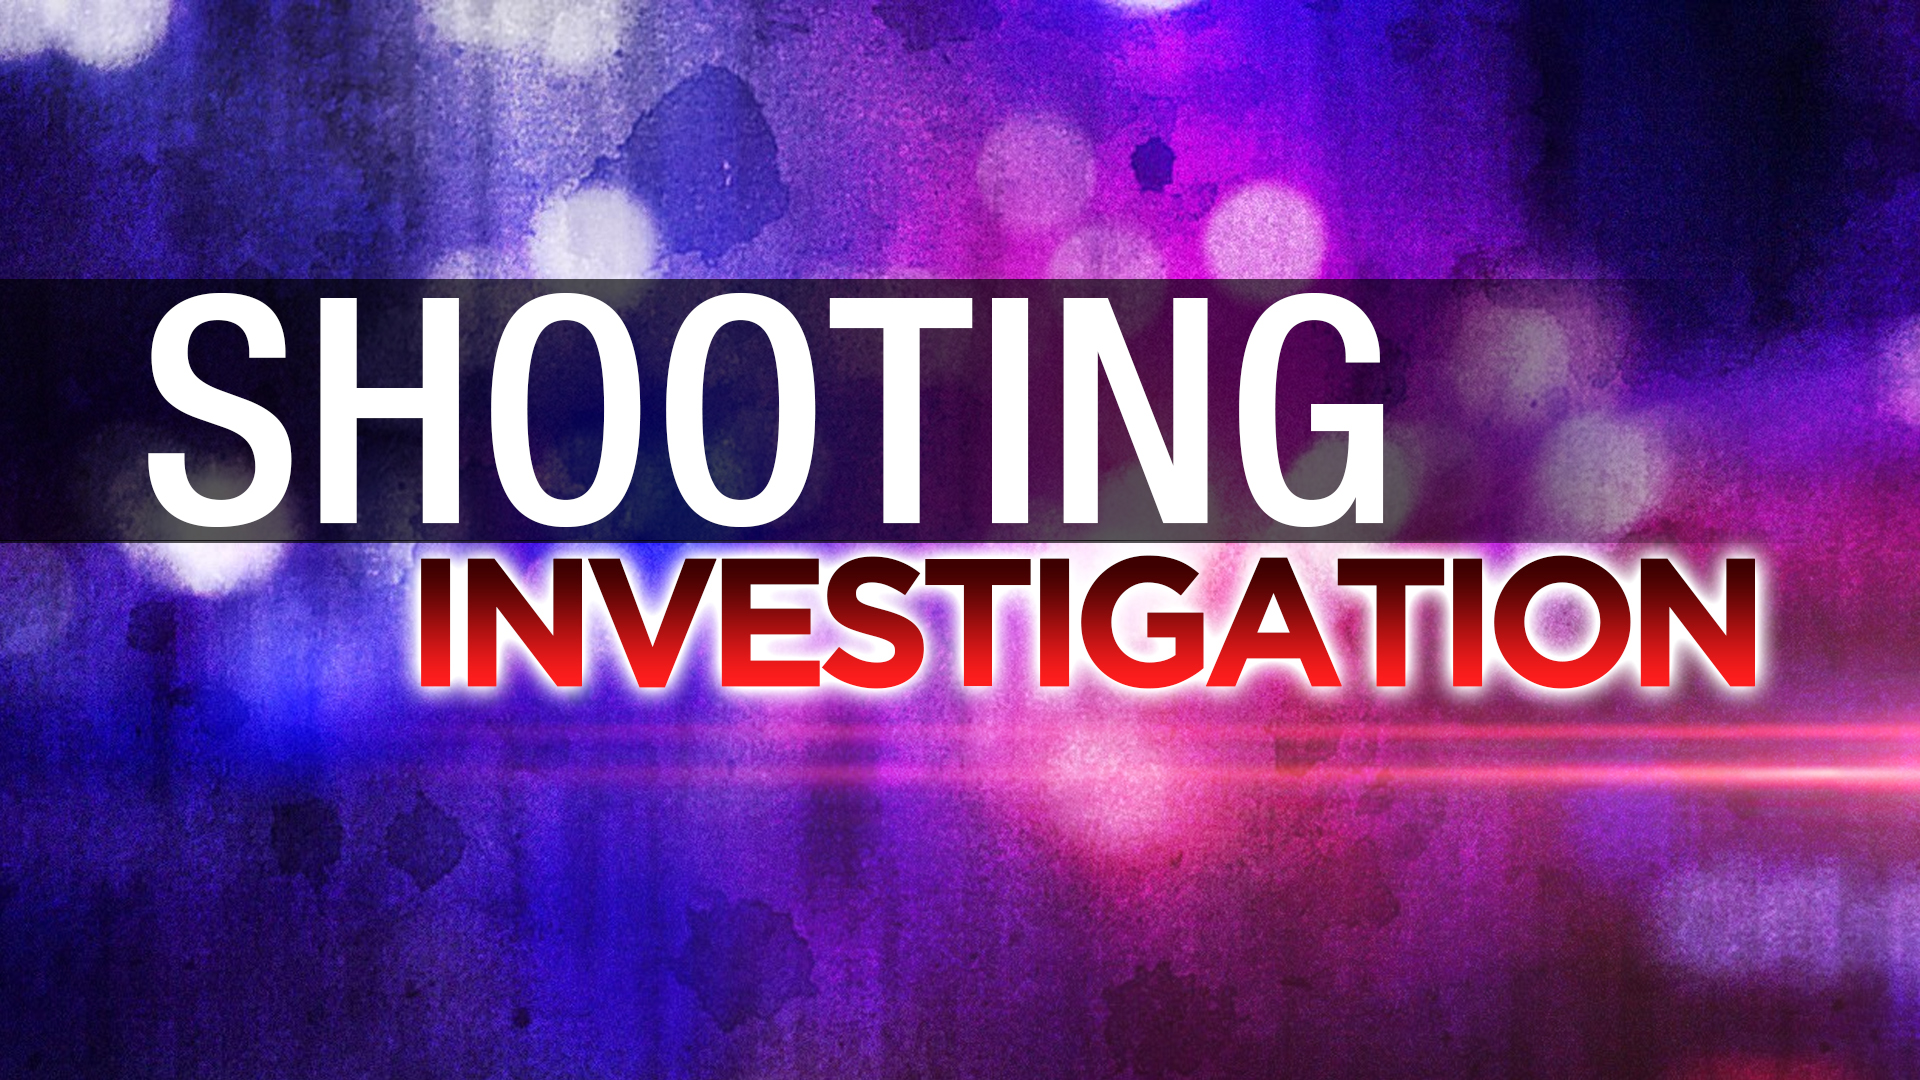 SHOOTING INVESTIGATION_1535258168595.jpg.jpg